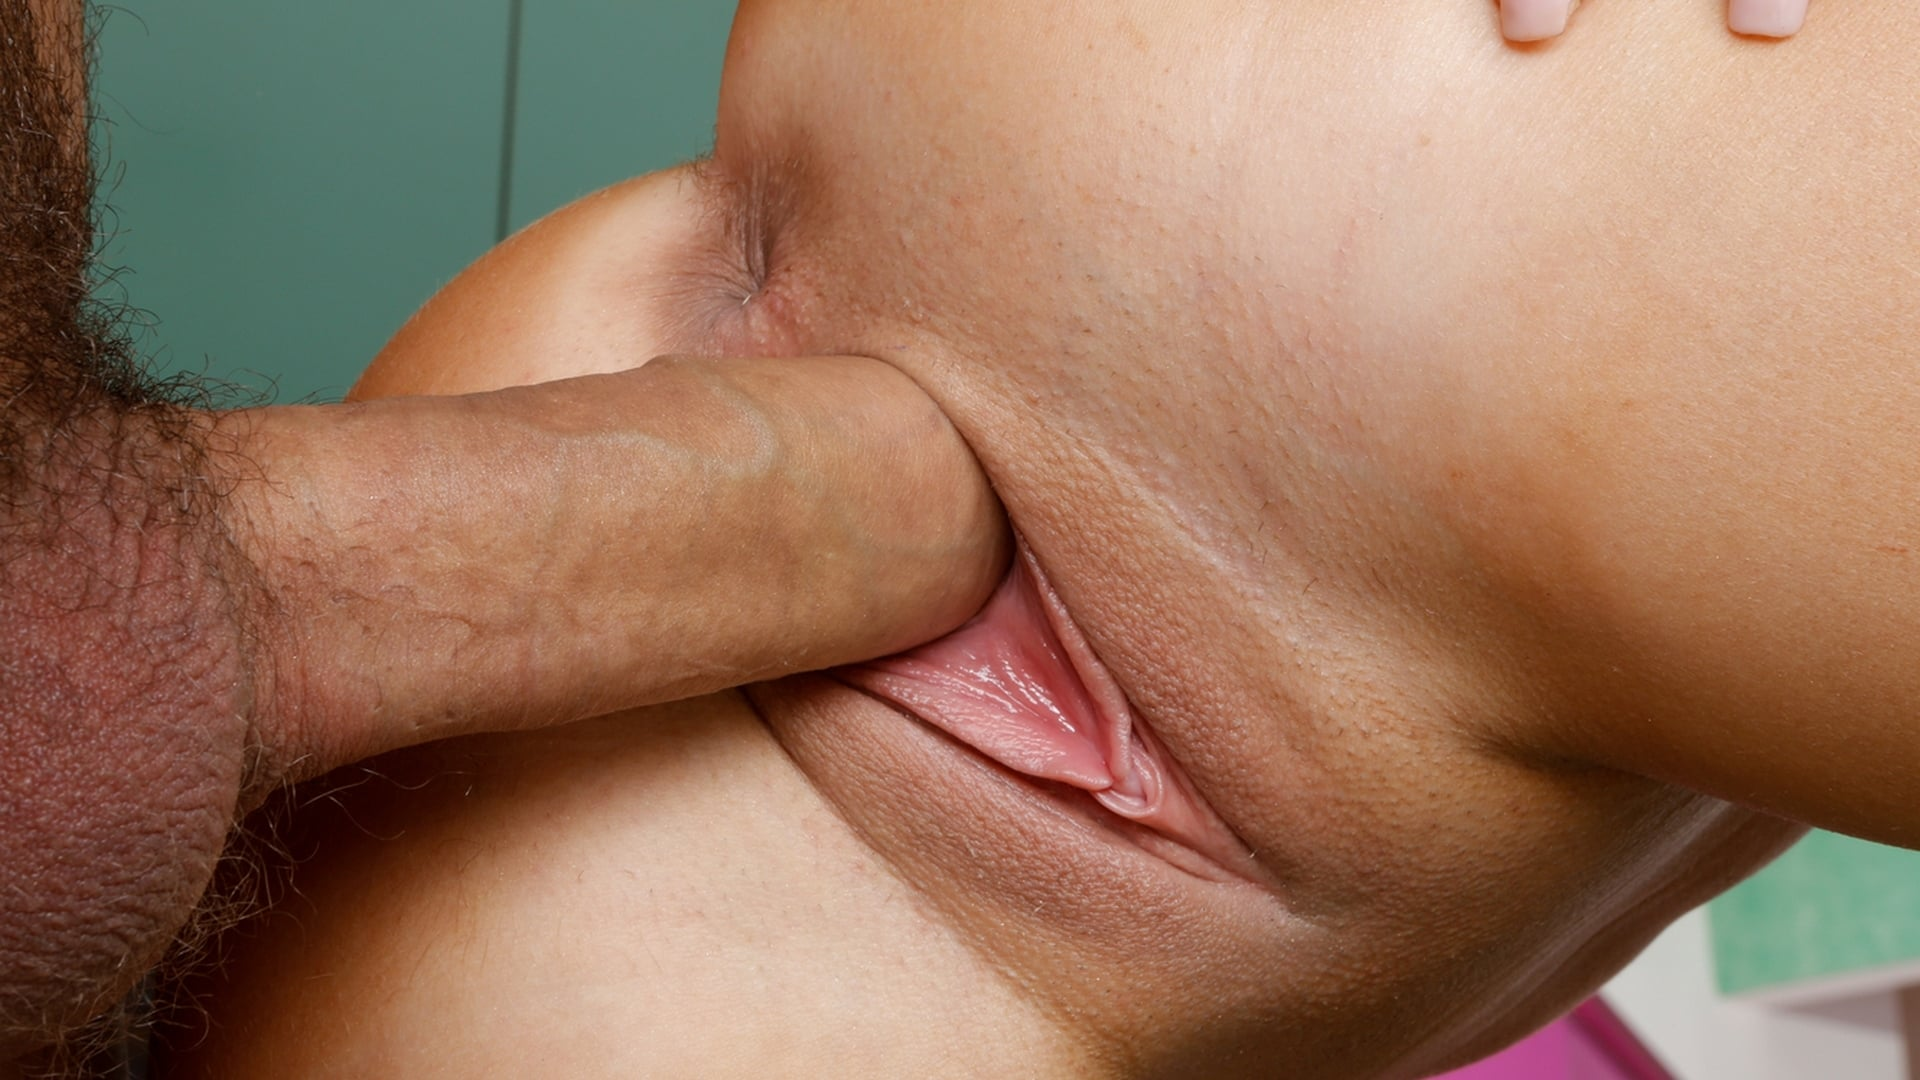 cock-in-between-pussy-lips